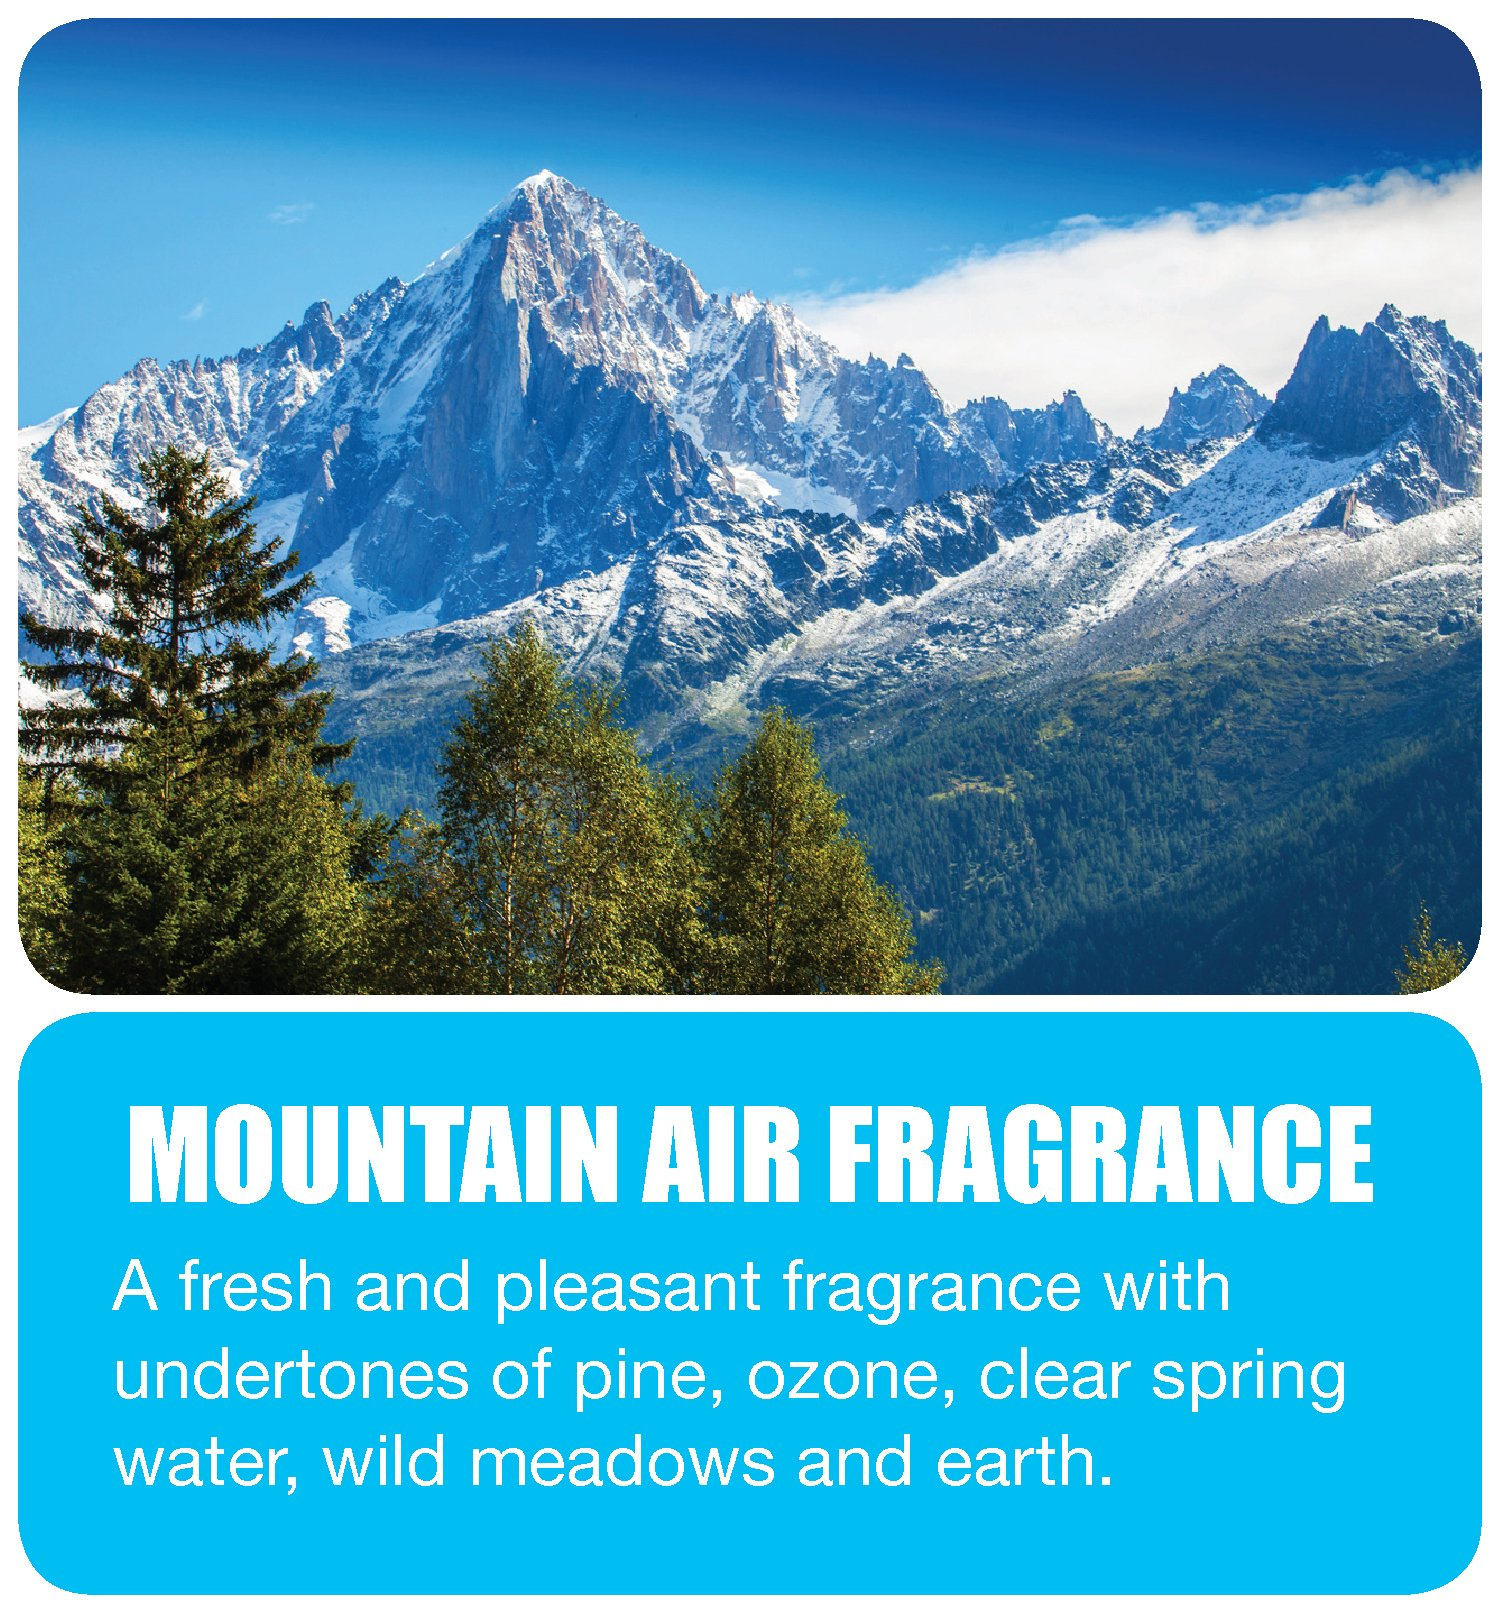 Big D 463 Concentrated Room Deodorant for Metered Aerosol Dispensers, Mountain Air Fragrance, 7 oz (Pack of 12) - Air freshener ideal for restrooms, offices, schools, restaurants, hotels, stores by Big D (Image #2)